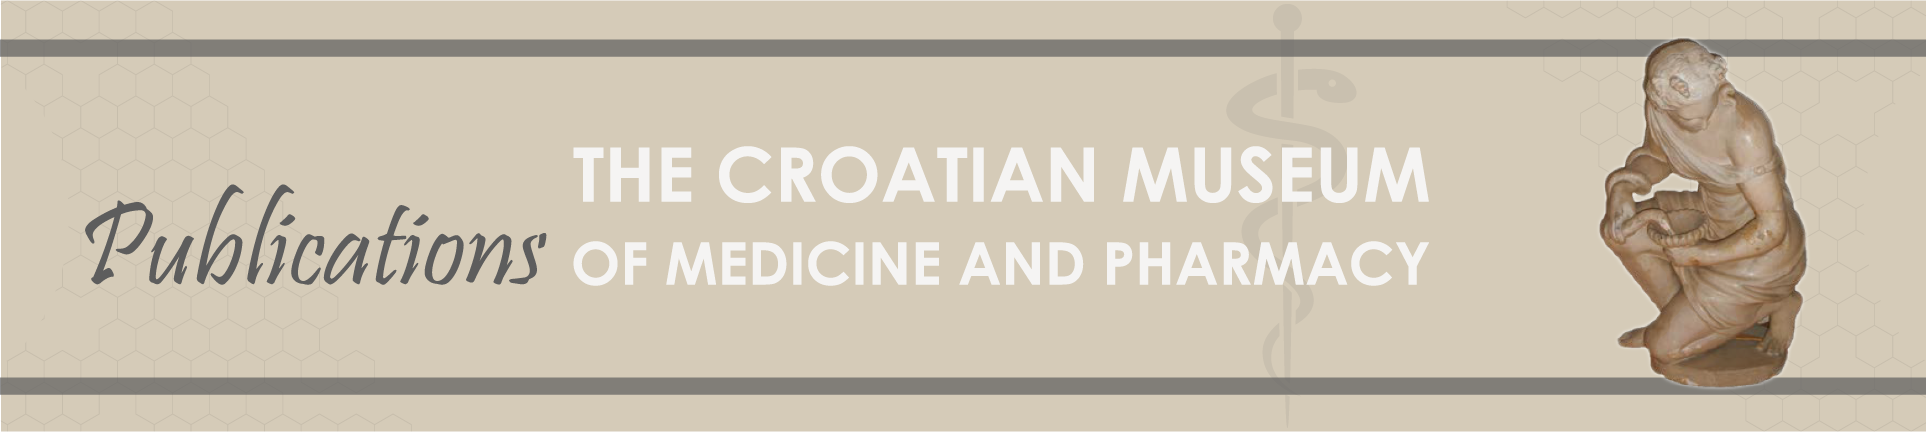 The Croatian Museum of Medicine and Pharmacy - Publications